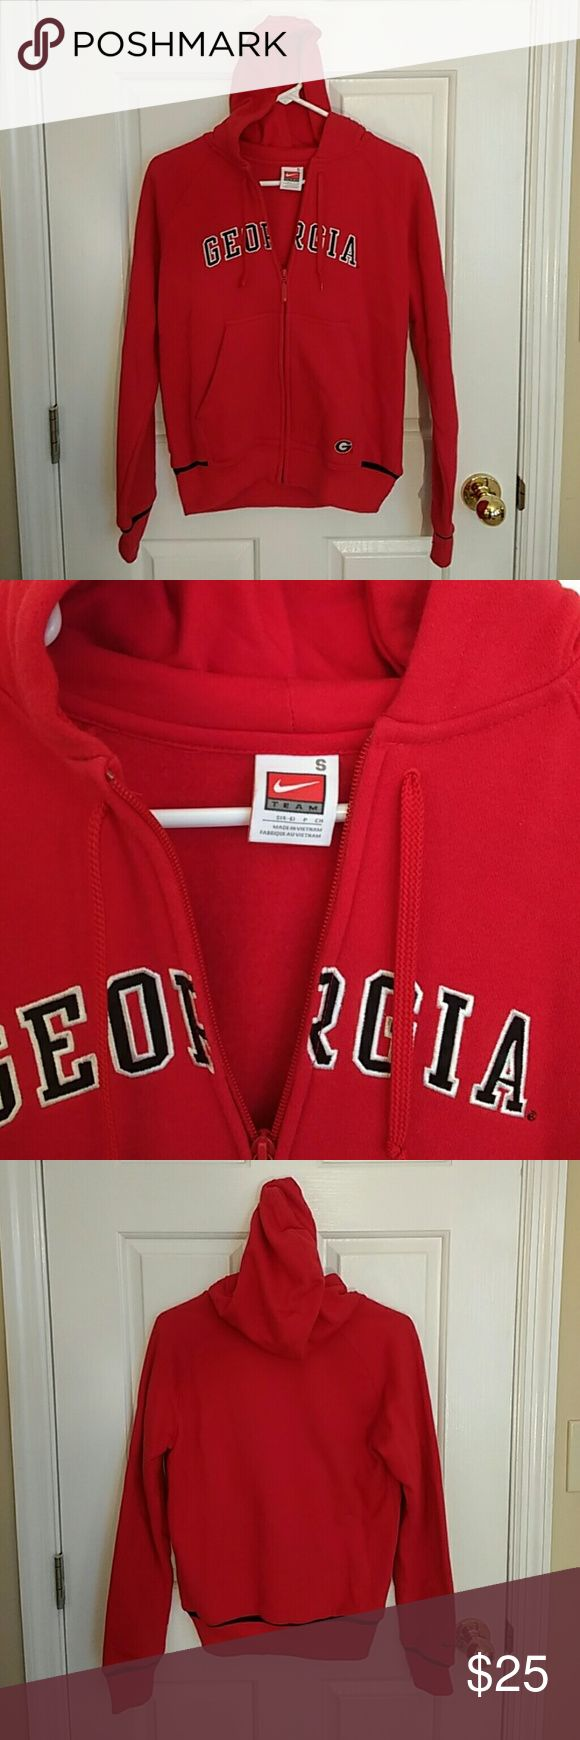 Nike Fleece Zip Up Hoodie UGA Georgia Bulldogs This is a Nike fleece hoodie that zips up the front with licensed Georgia Bulldogs team spirit. It's a size small and got buried in my closet through college - it has literally never been worn and is now too small for me. No rips, tears, or stains to speak of. Let me know if you have any questions. Nike Tops Sweatshirts & Hoodies